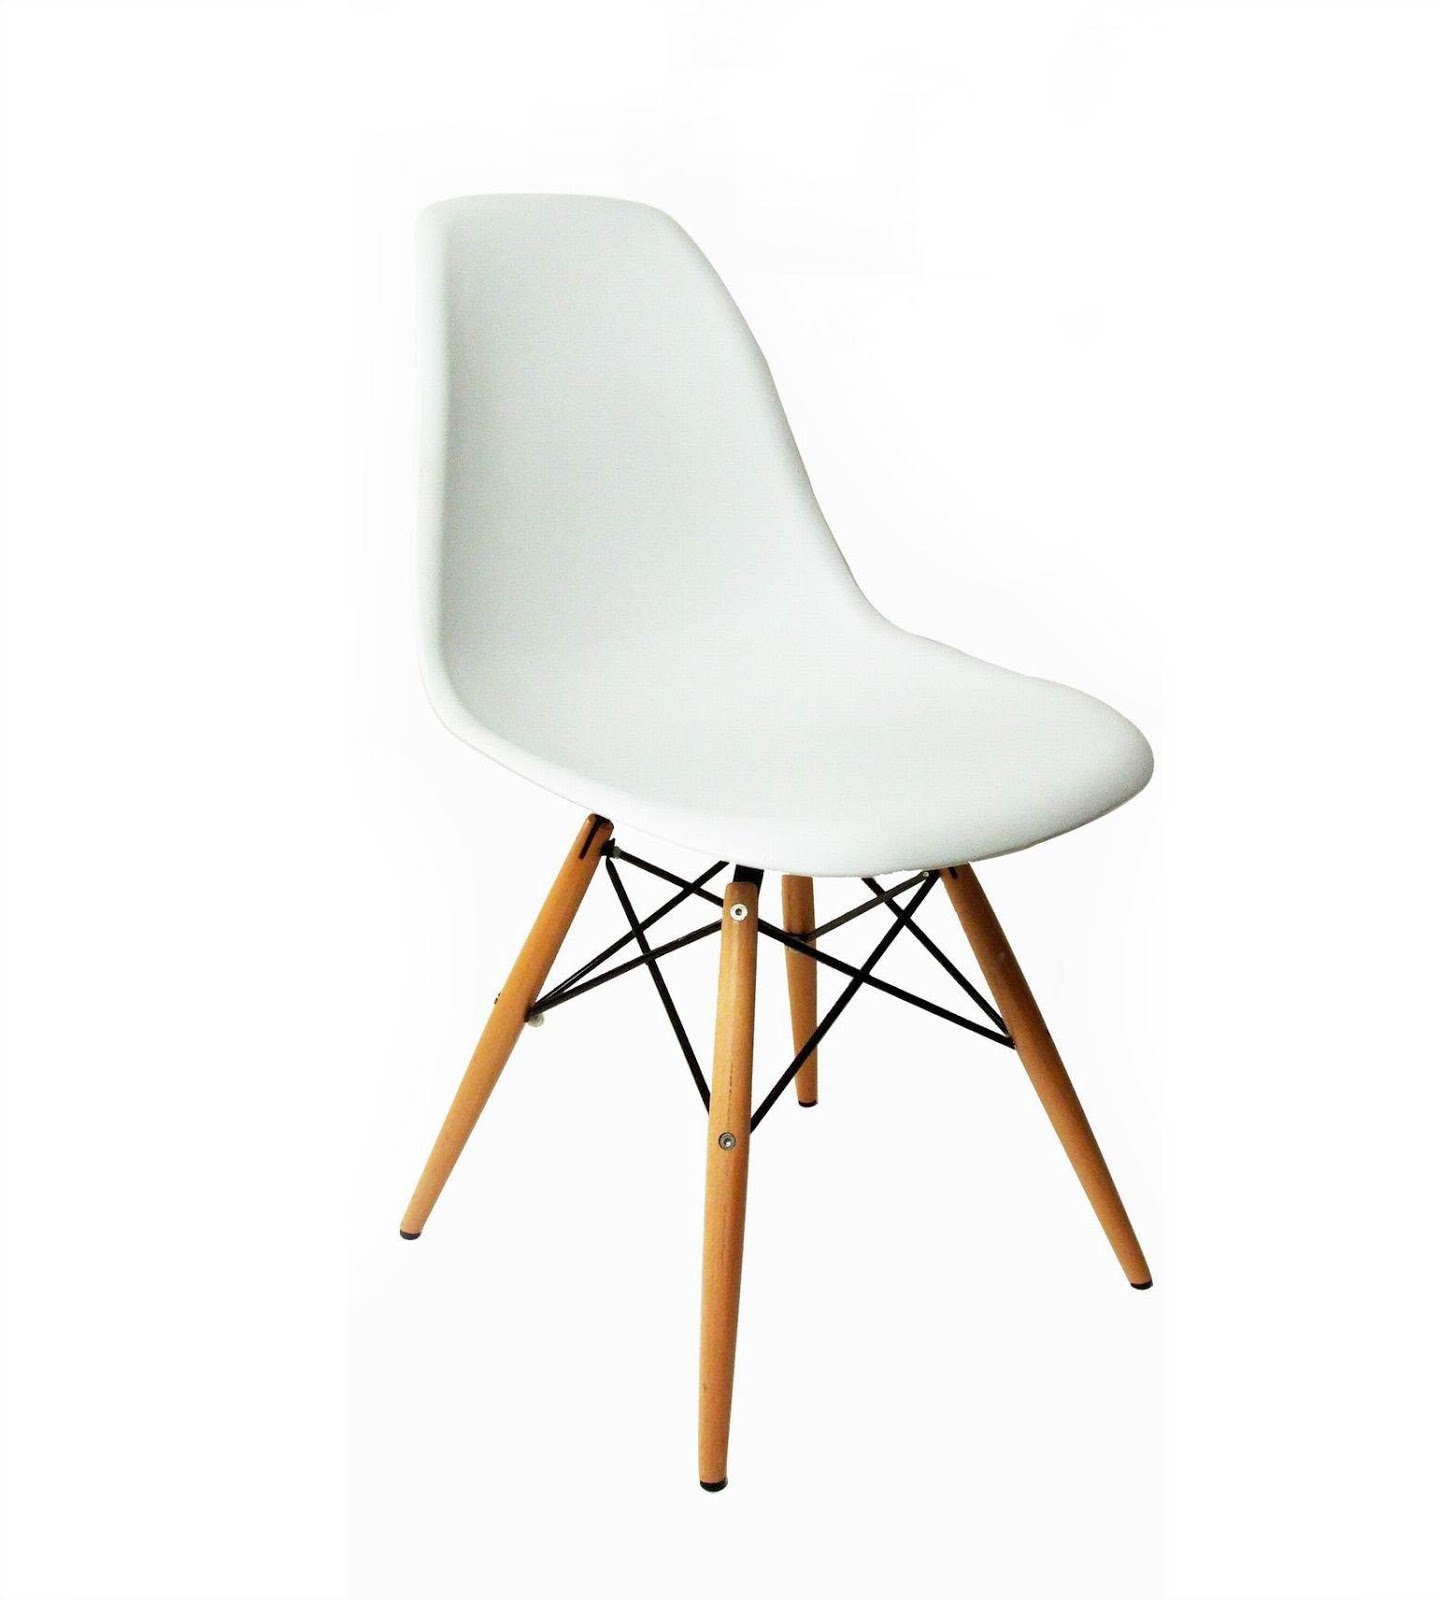 Klismos chair drawing - These Are The Beauties That I Am Waiting On For My Own Kitchen With A Little Bit Of It All And The Contrast In Color They Are Perfect For Me